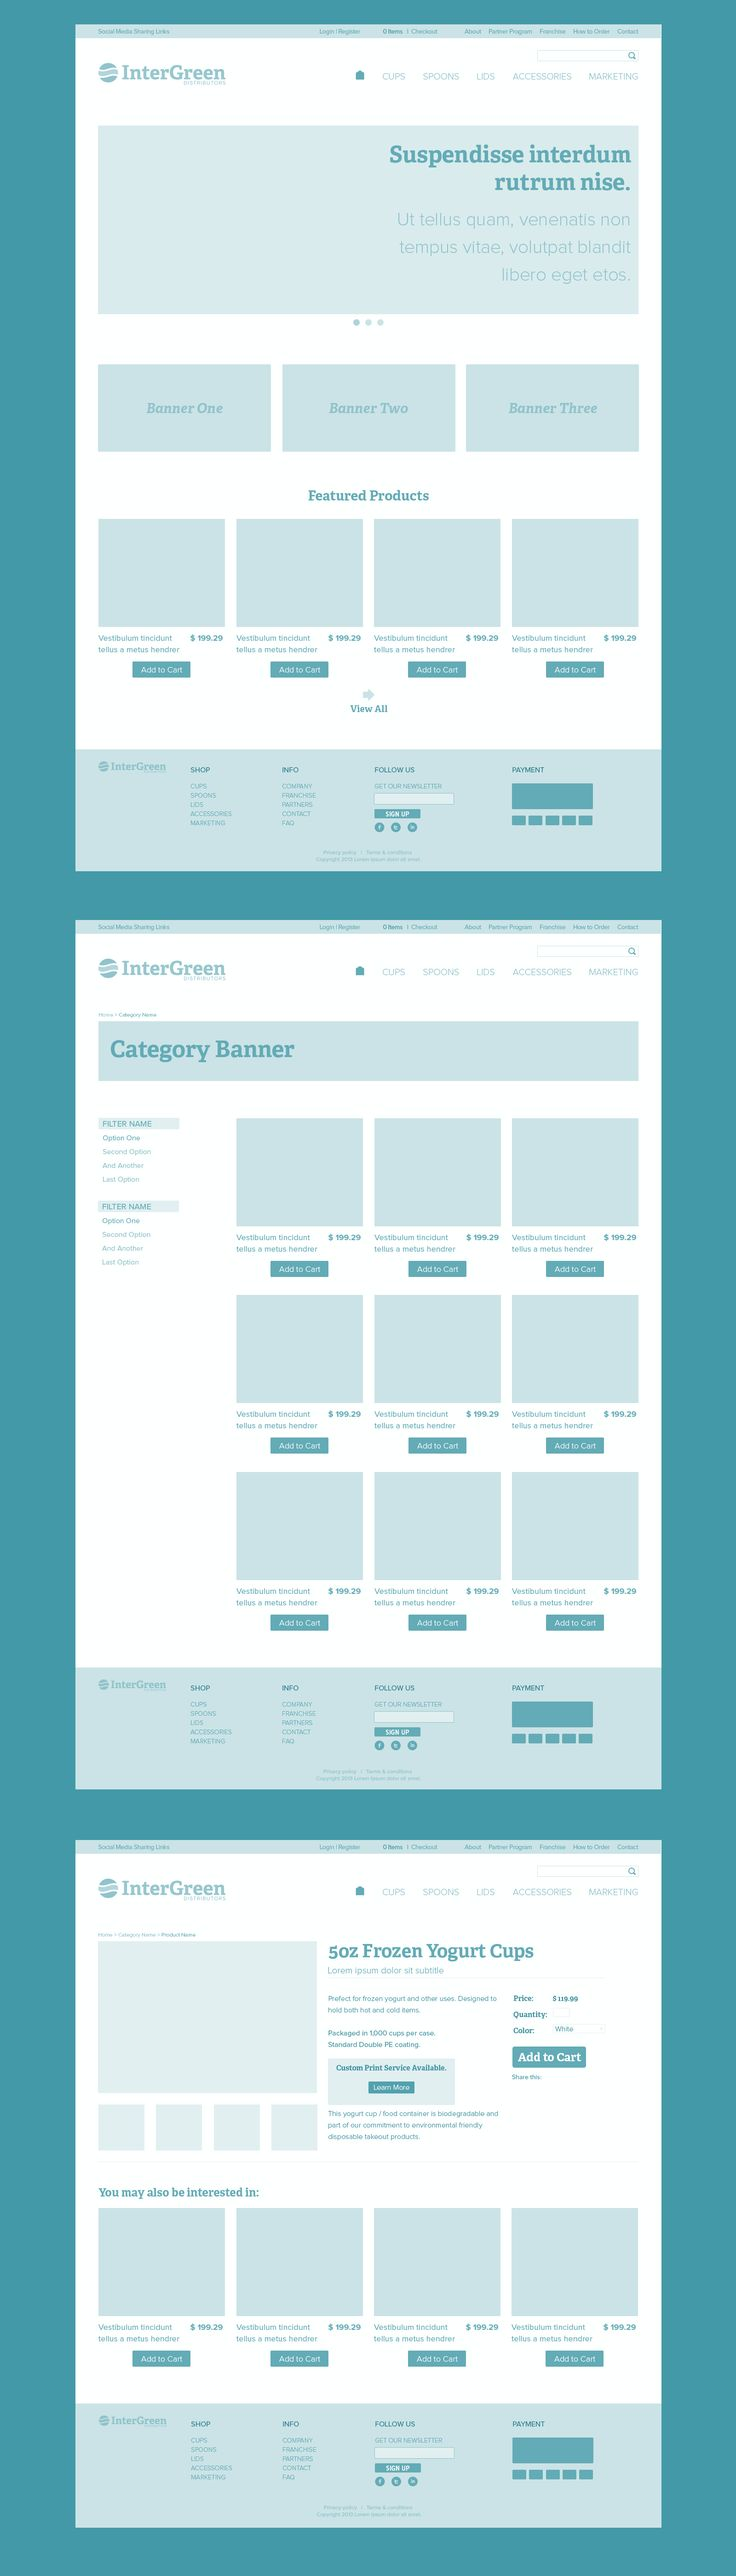 #ecommerce #Wireframes